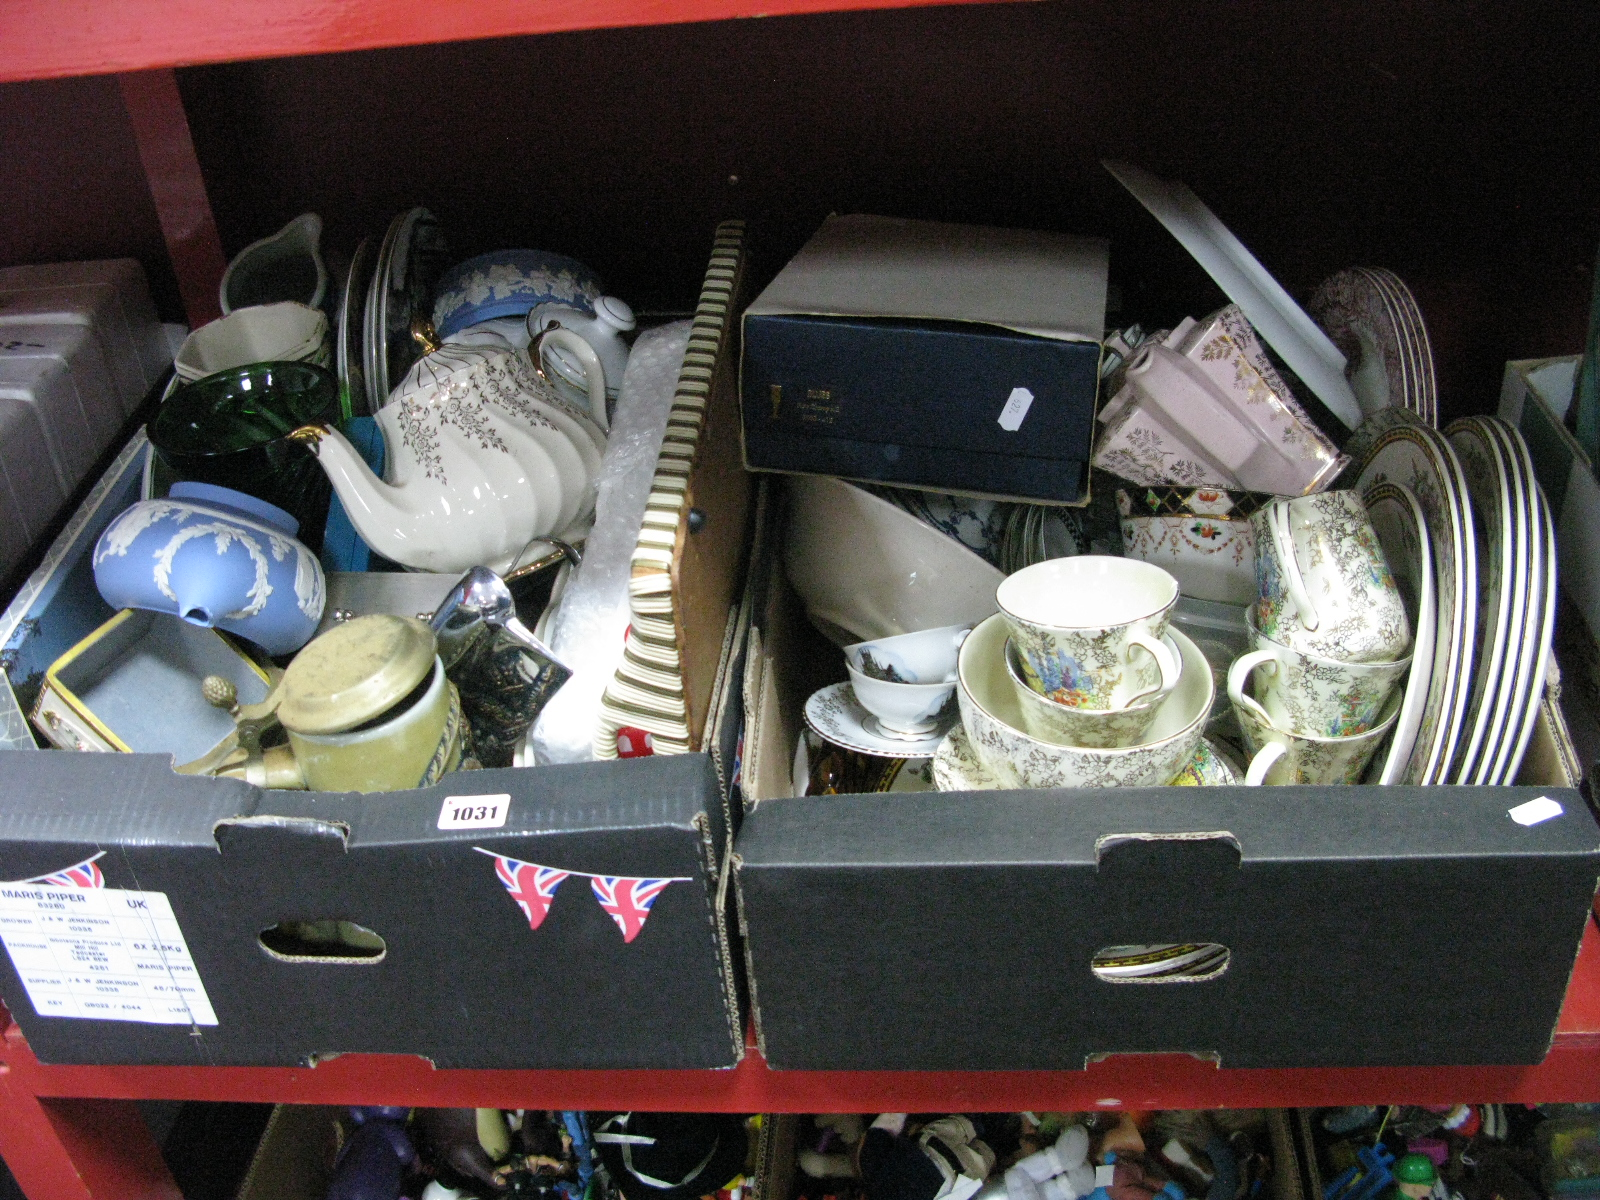 Lot 1031 - Teapots, cabinet plates, glassware, German stein, tray, etc:- Two Boxes